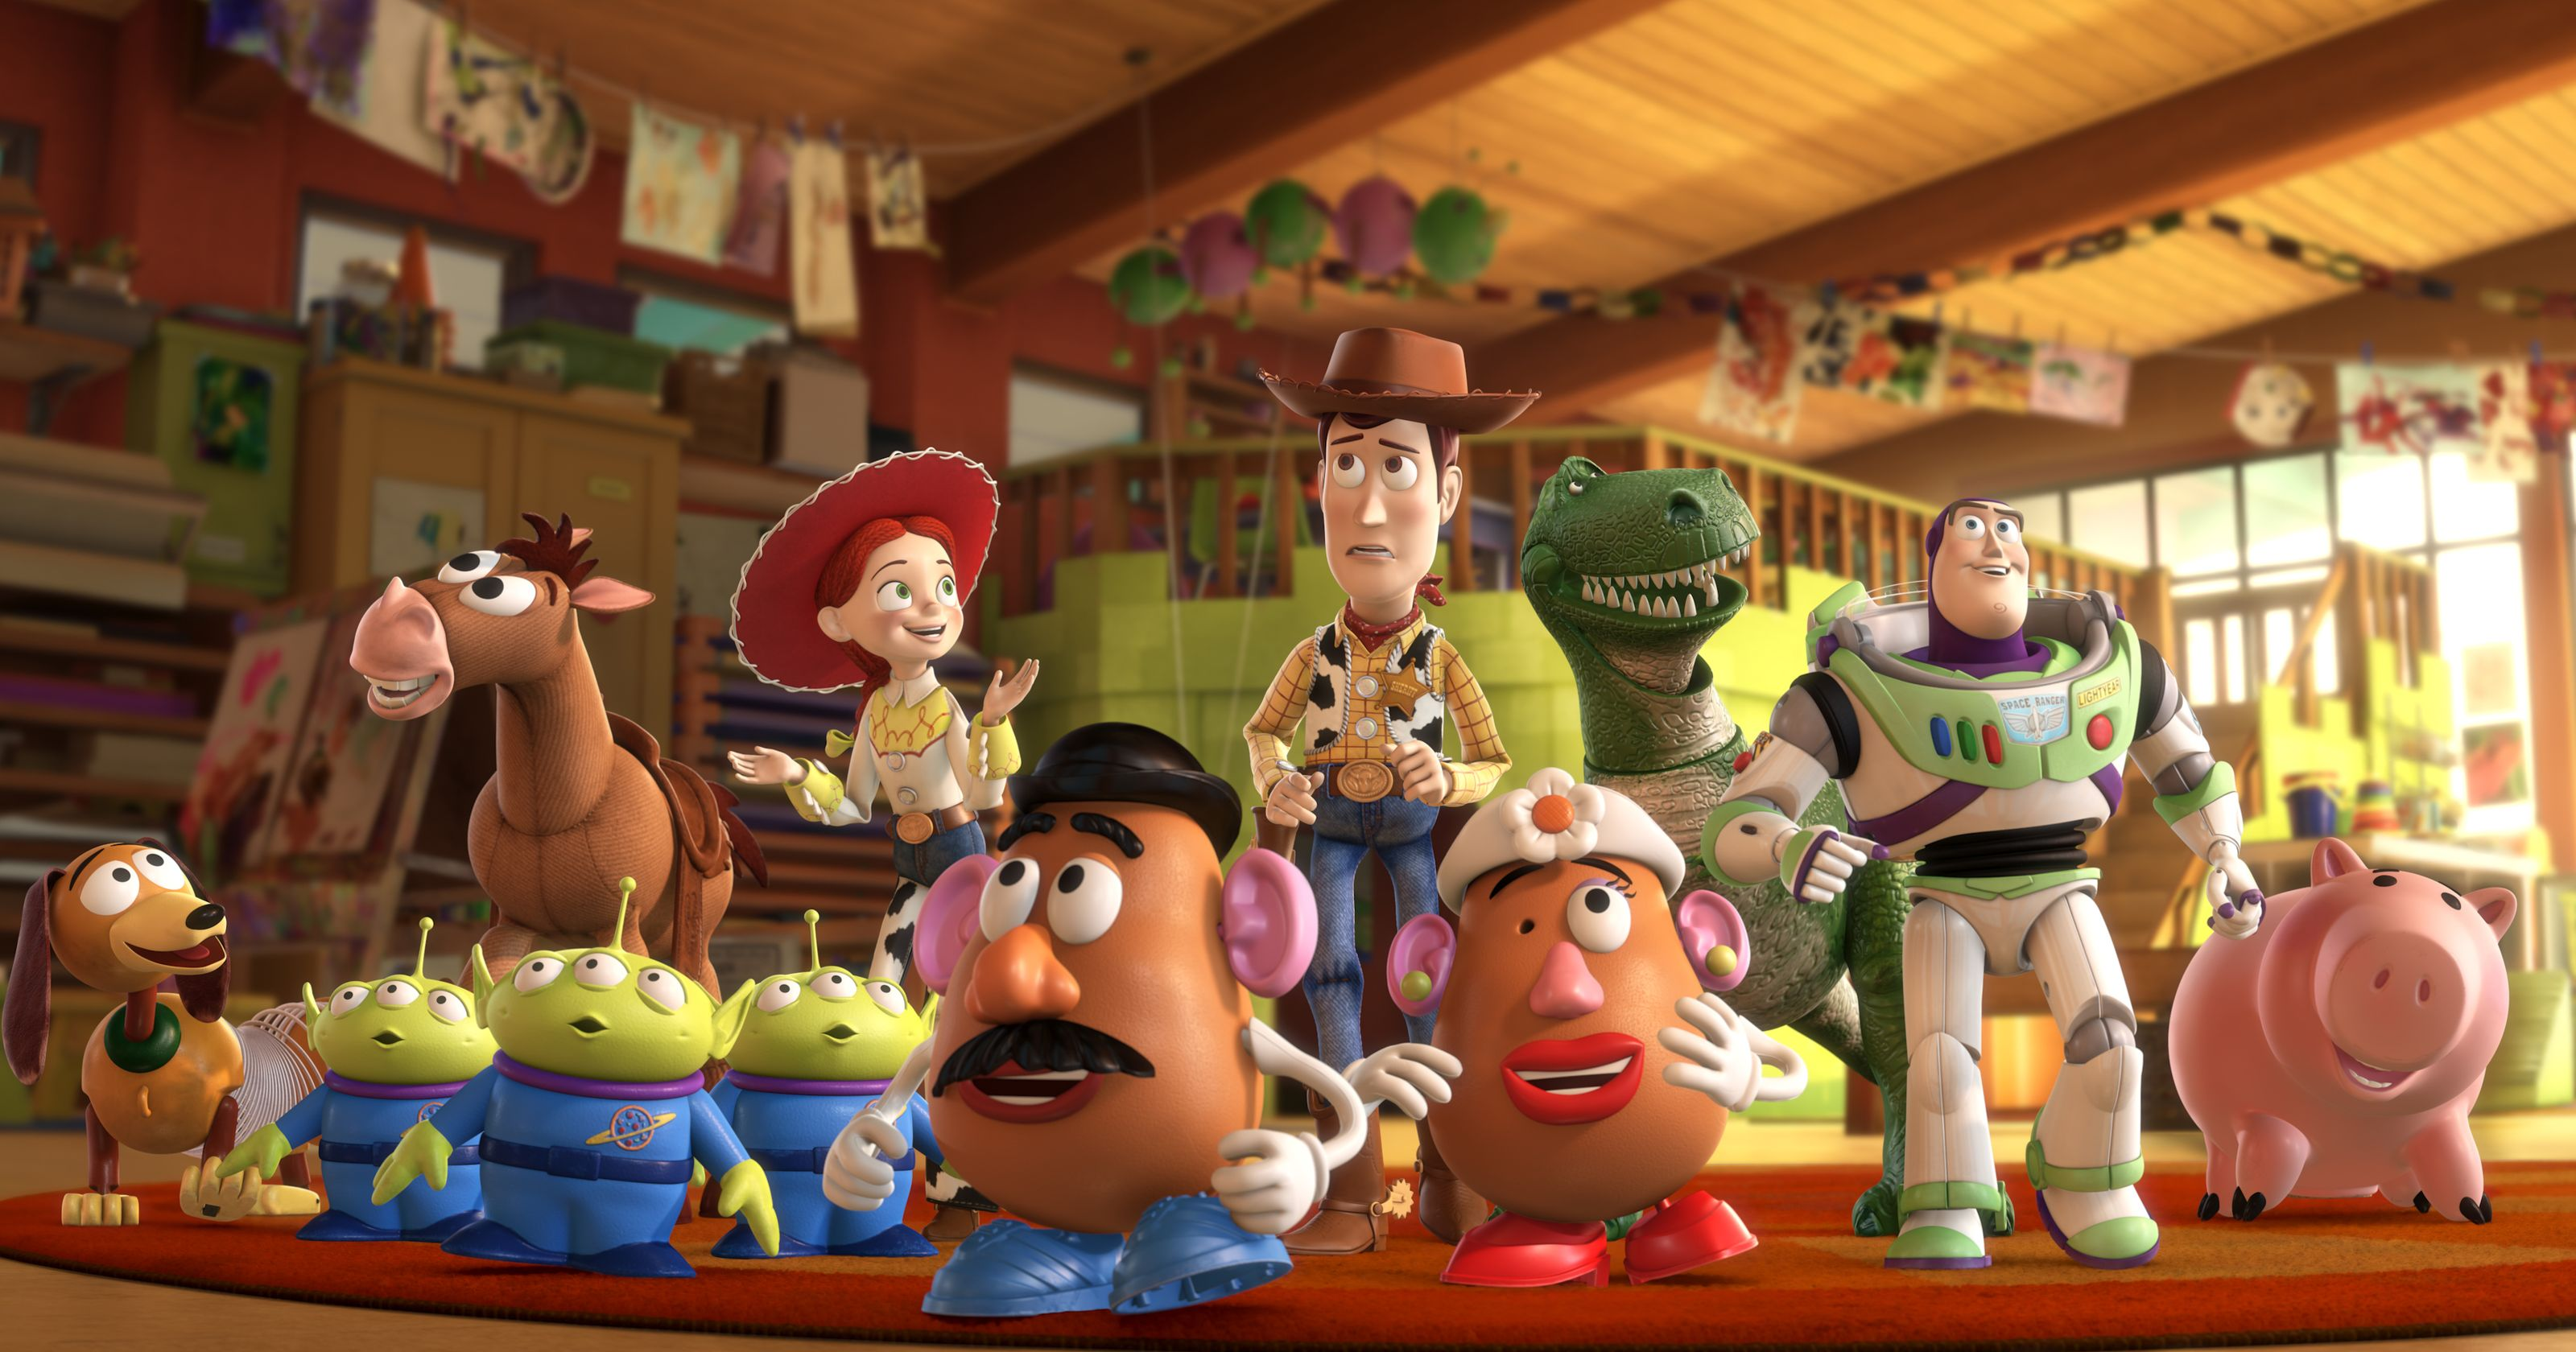 635508918899220283-D02-TOY-STORY-25-35961407